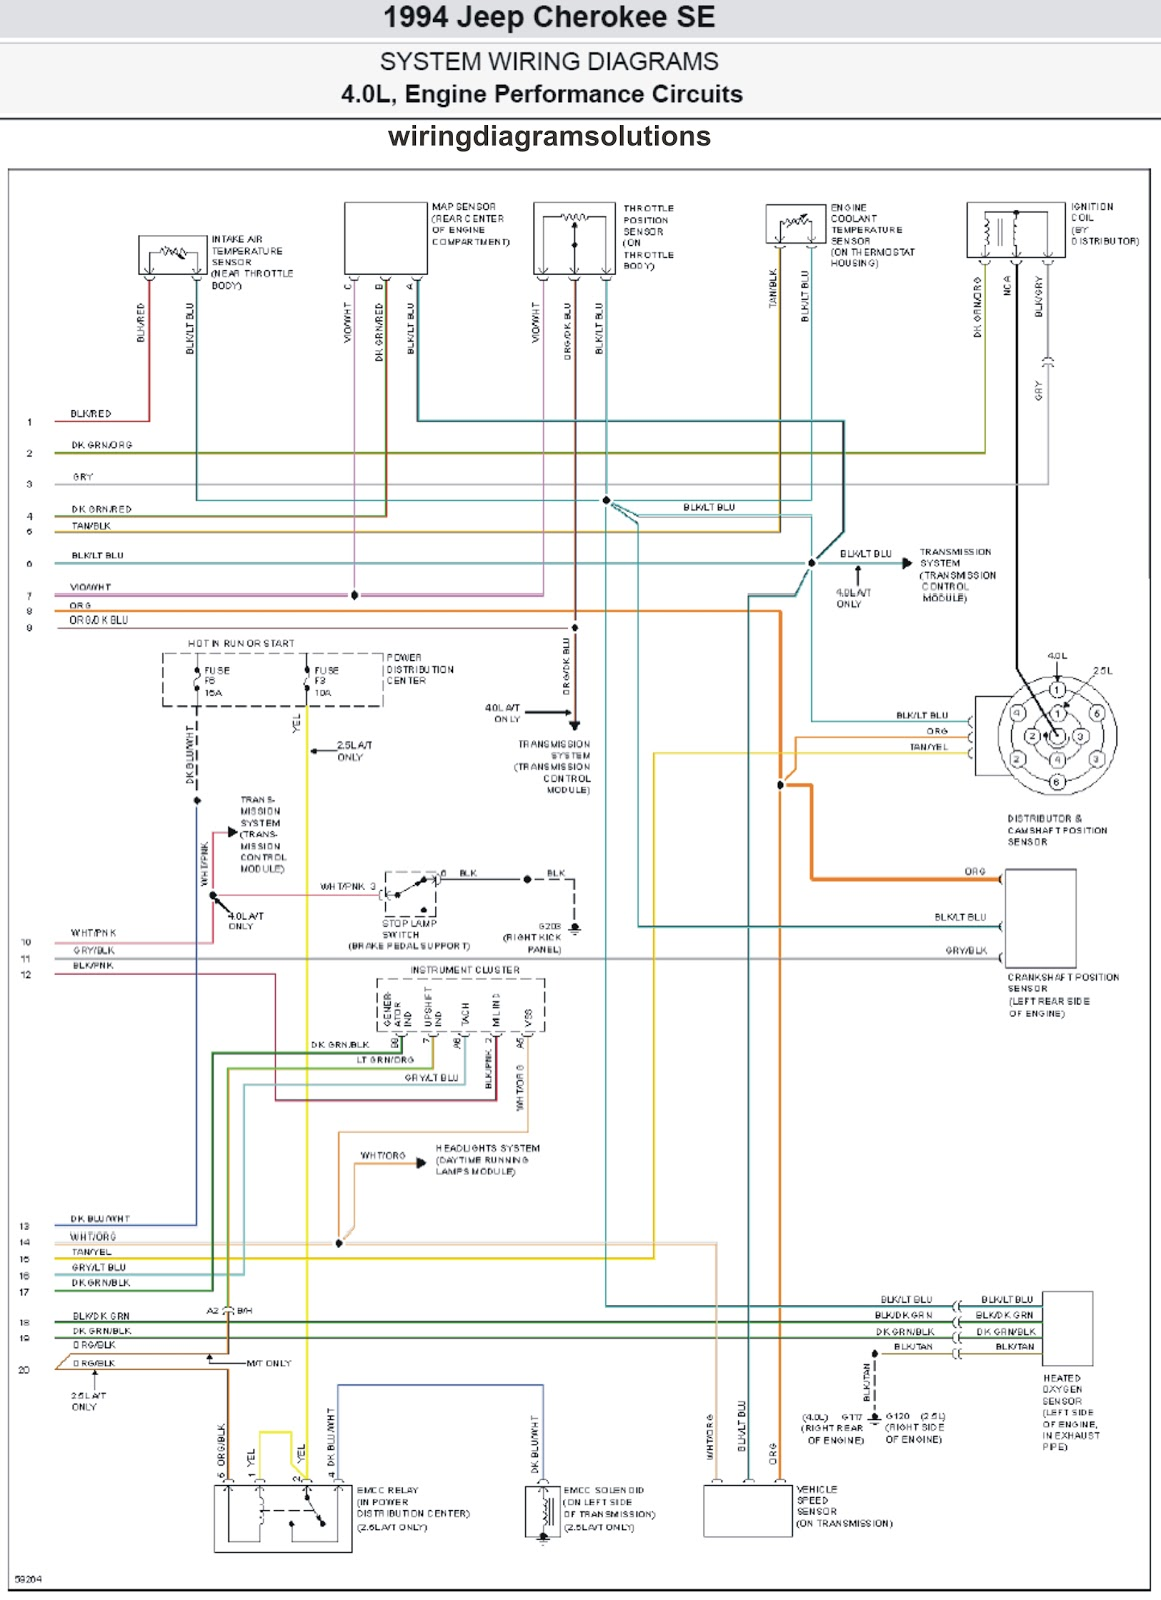 yj fuse diagram jeep yj radio wiring diagram wirdig jeep yj wiring Lighting Control Panel Diagram jeep yj radio wiring diagram wirdig jeep wrangler yj full door parts on wiring diagram for